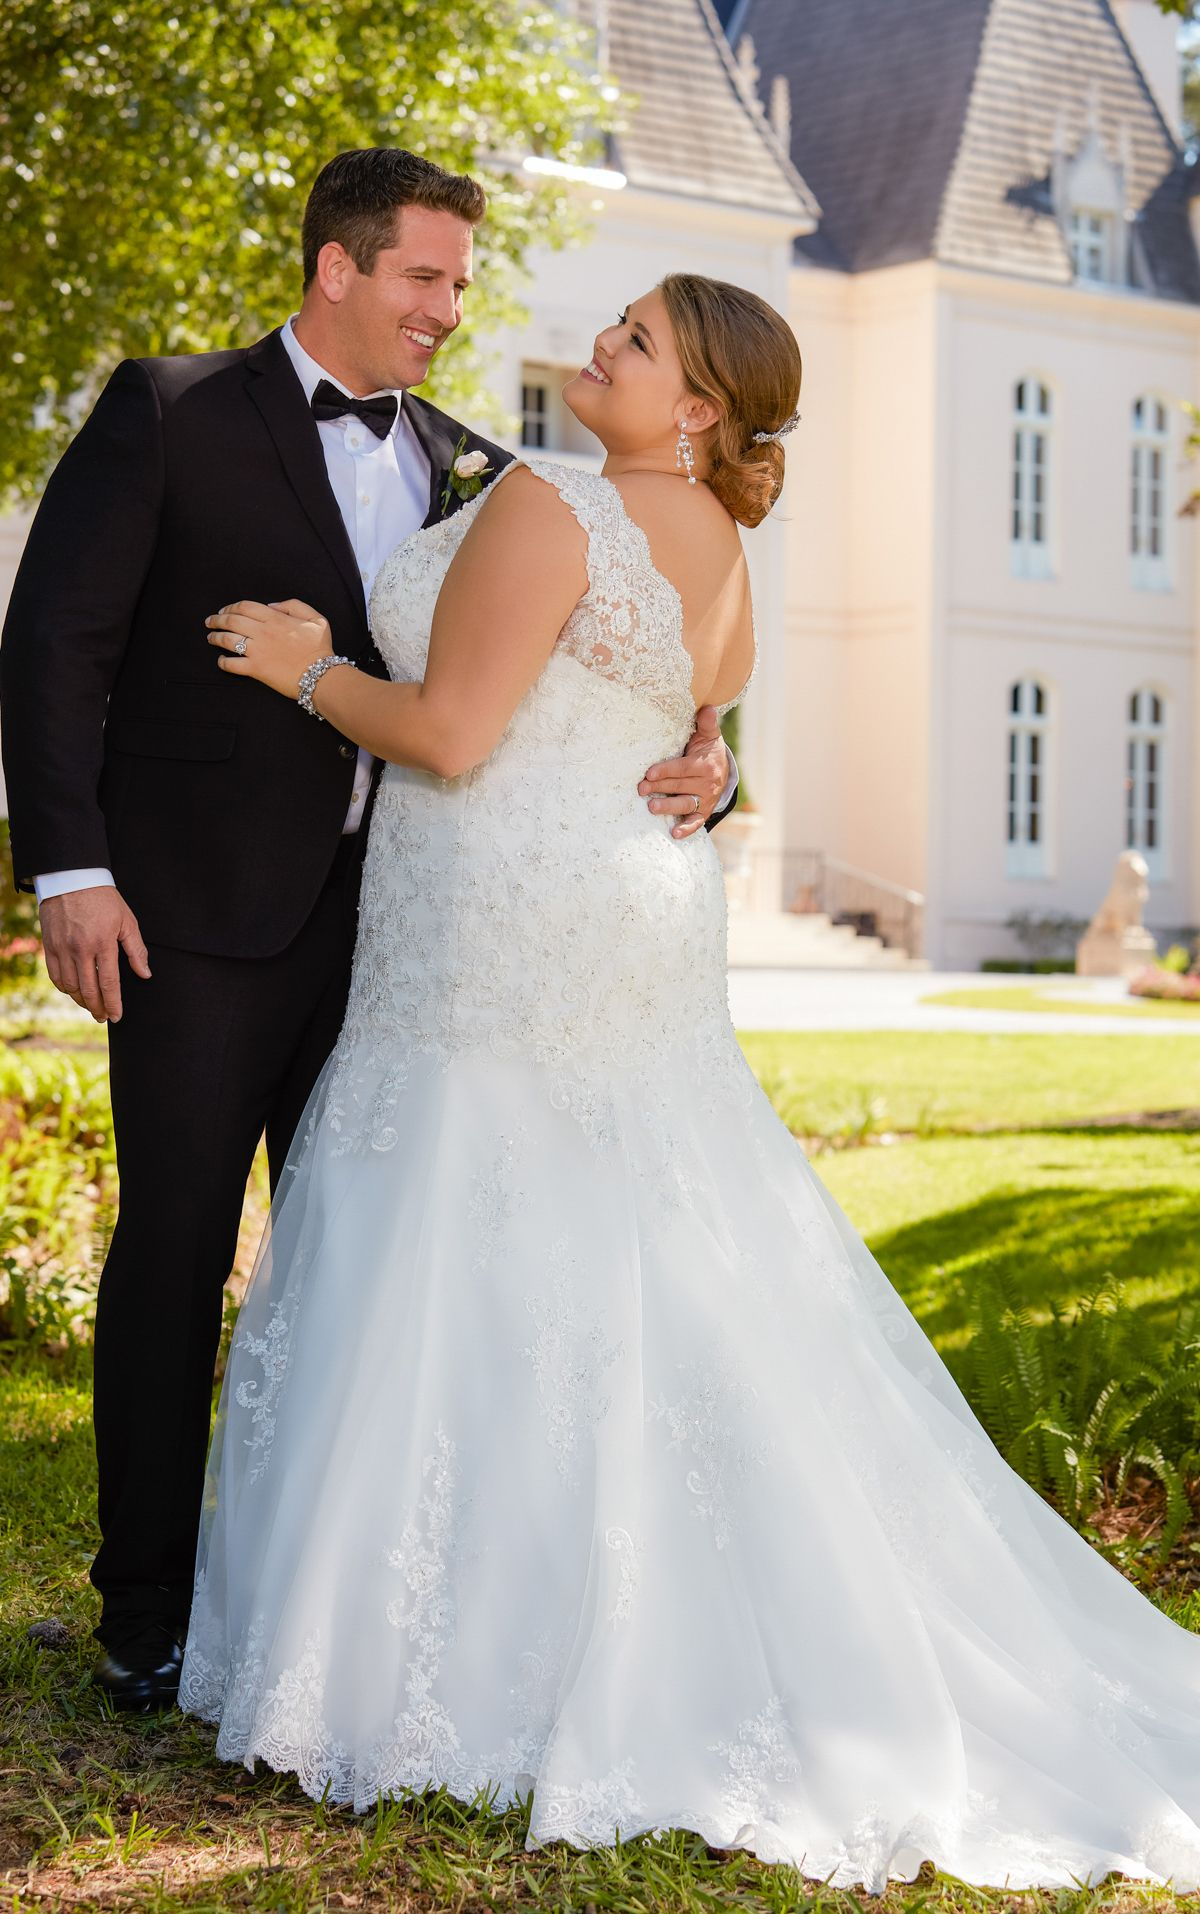 Lace fit and flare wedding gown with silver beading stella york